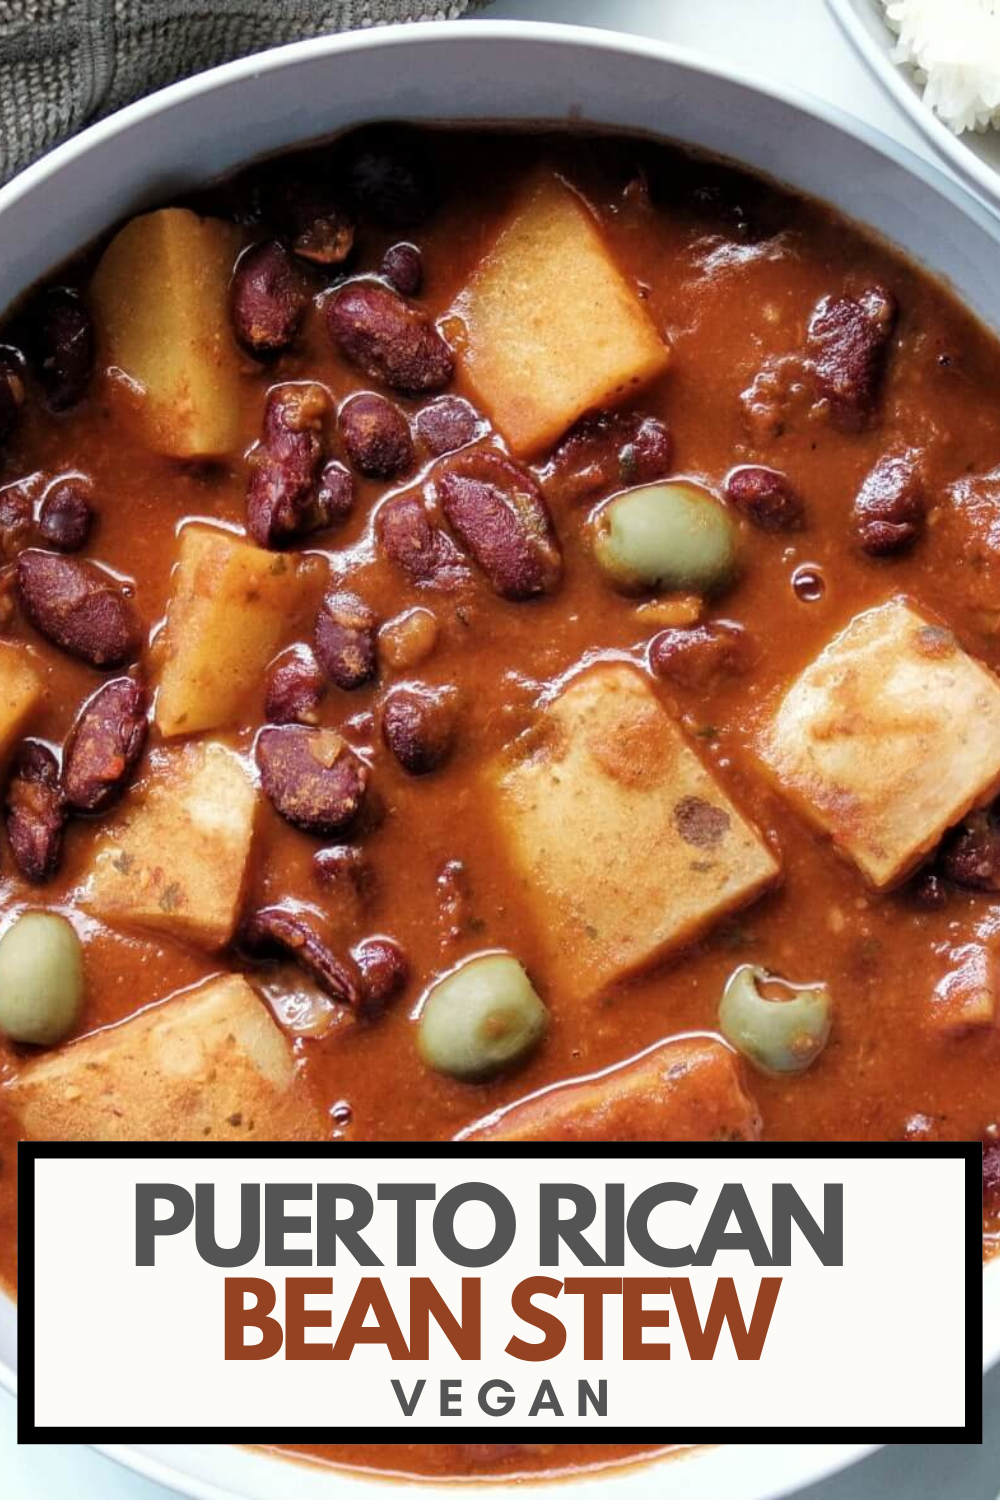 Pinnable for Pinterest. Puerto Rican stew.